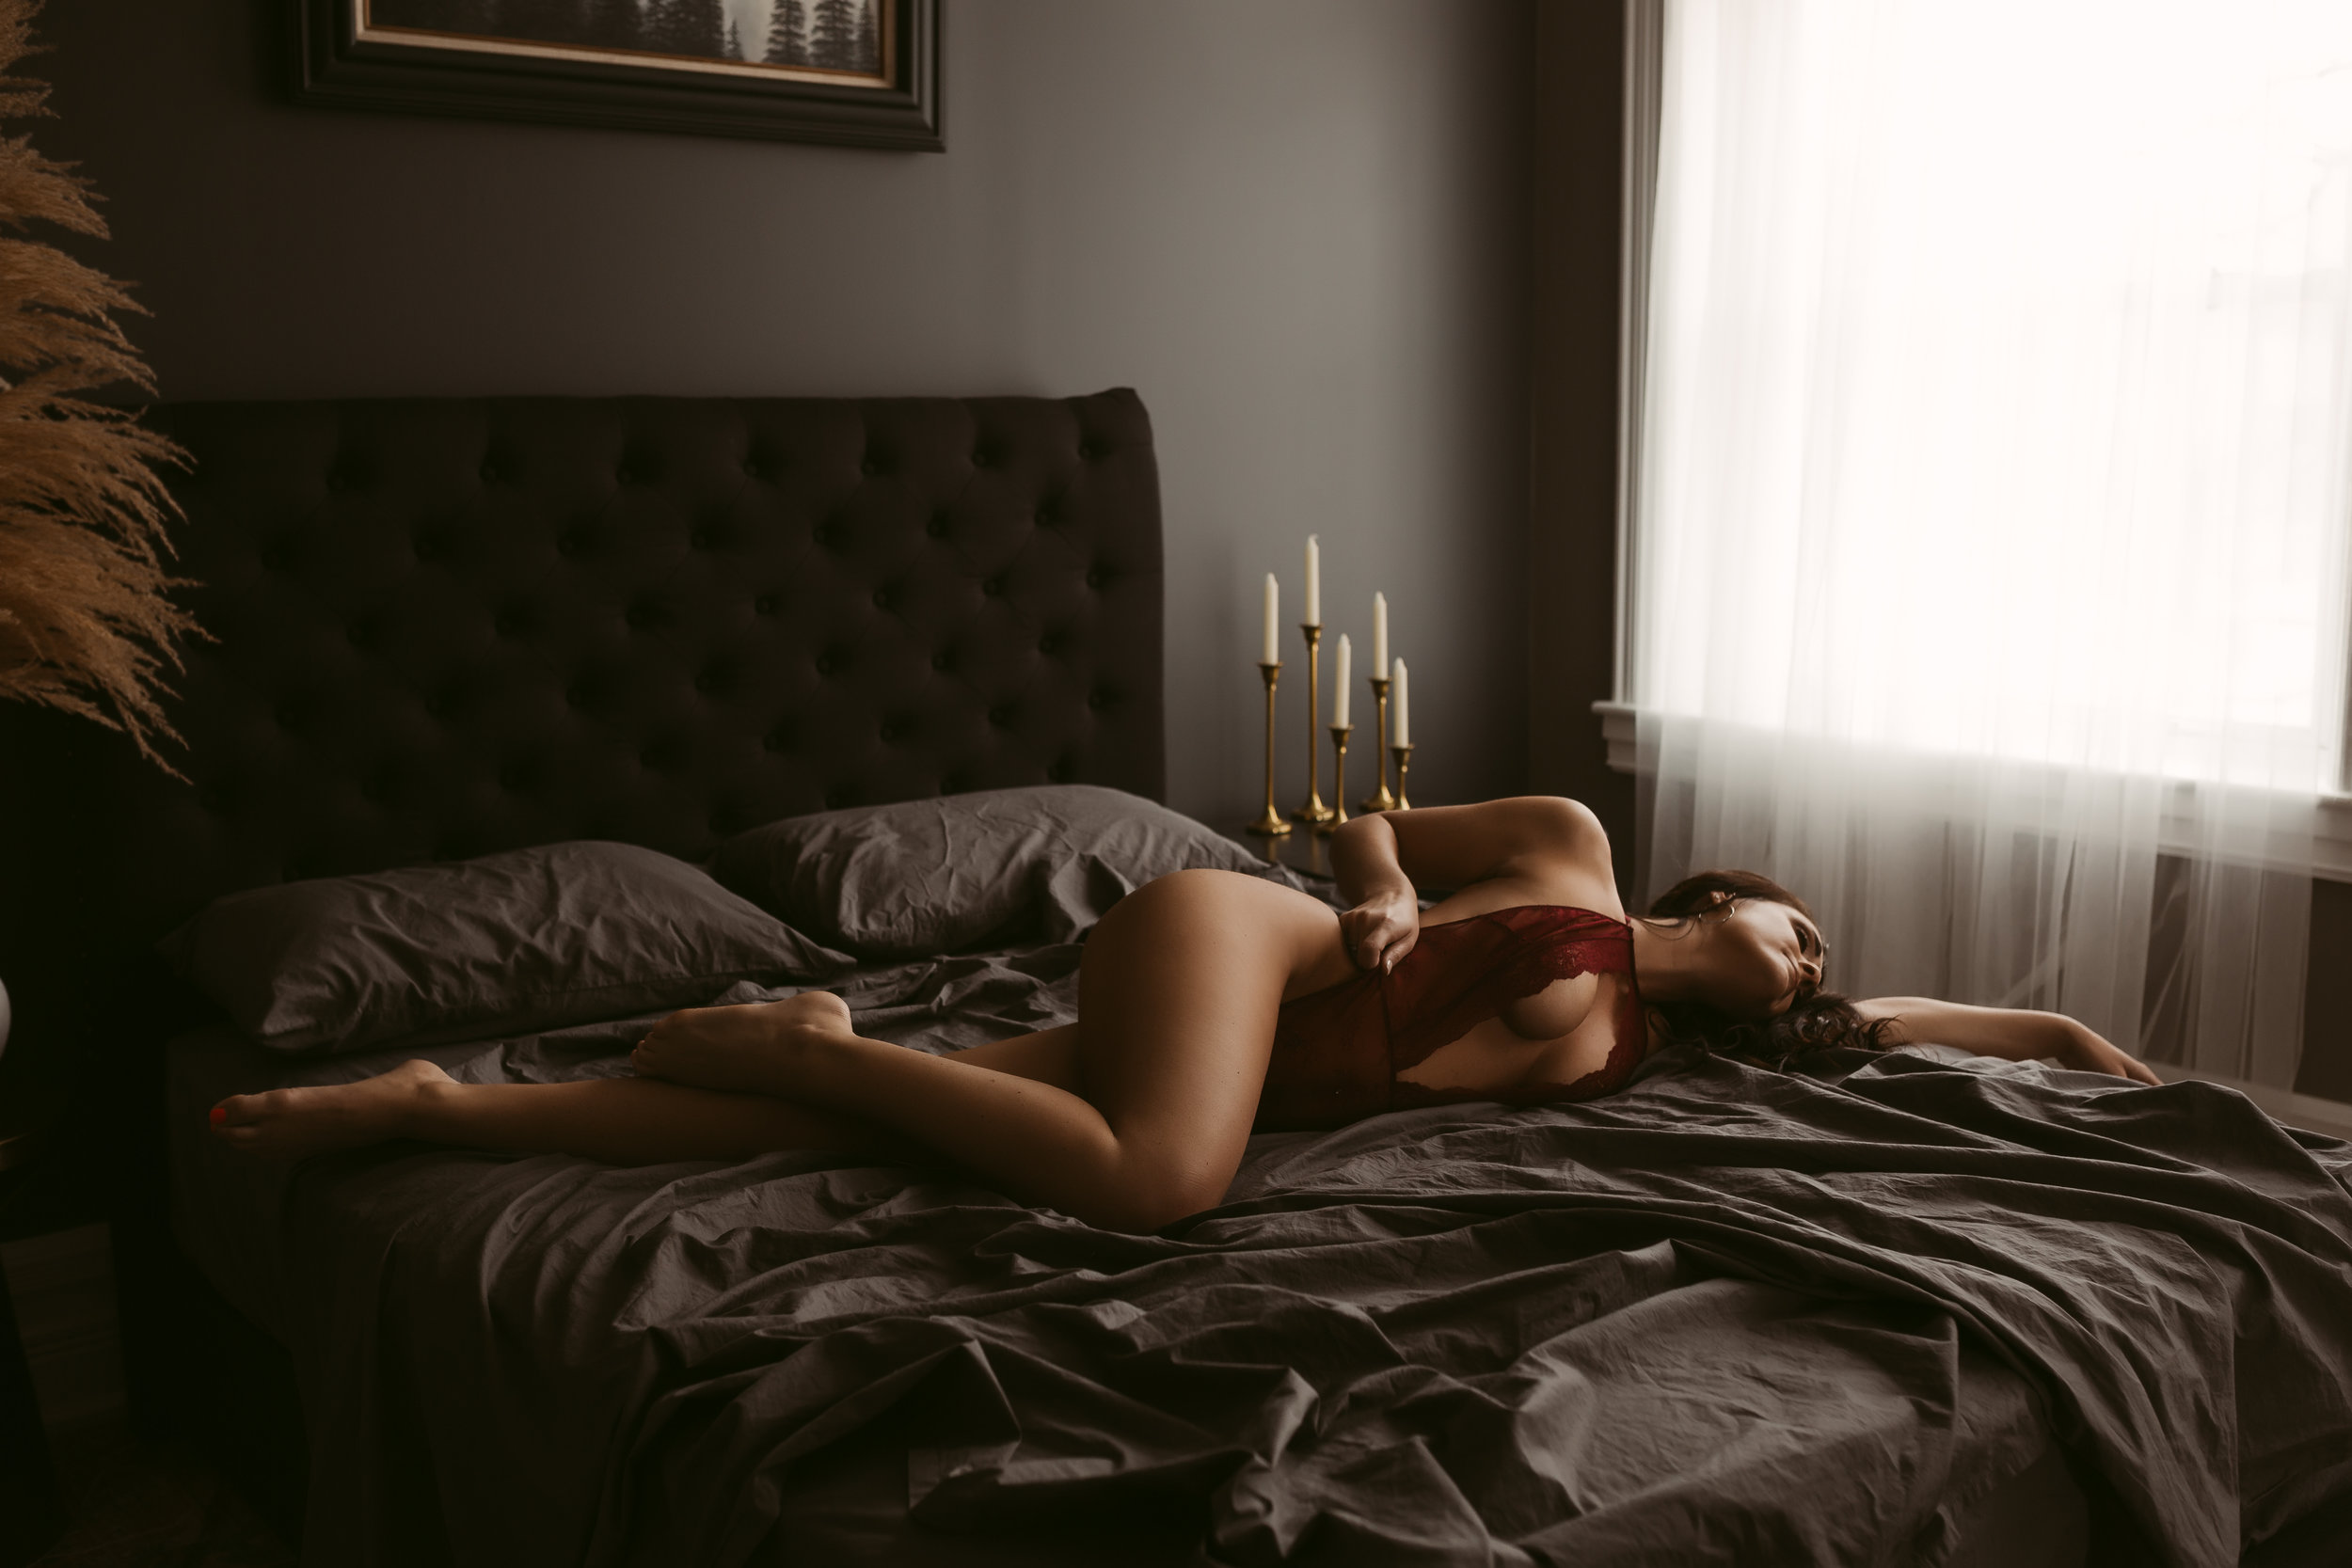 Butterfly_Boudoir_Michigan_Boudoir_Photography240.JPG